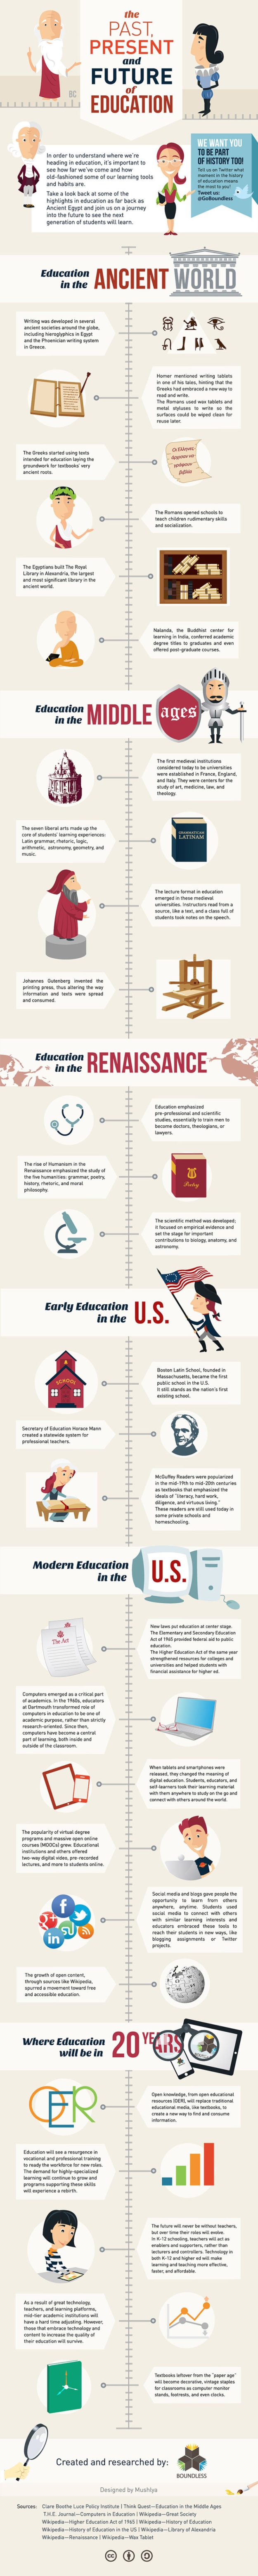 History of Education